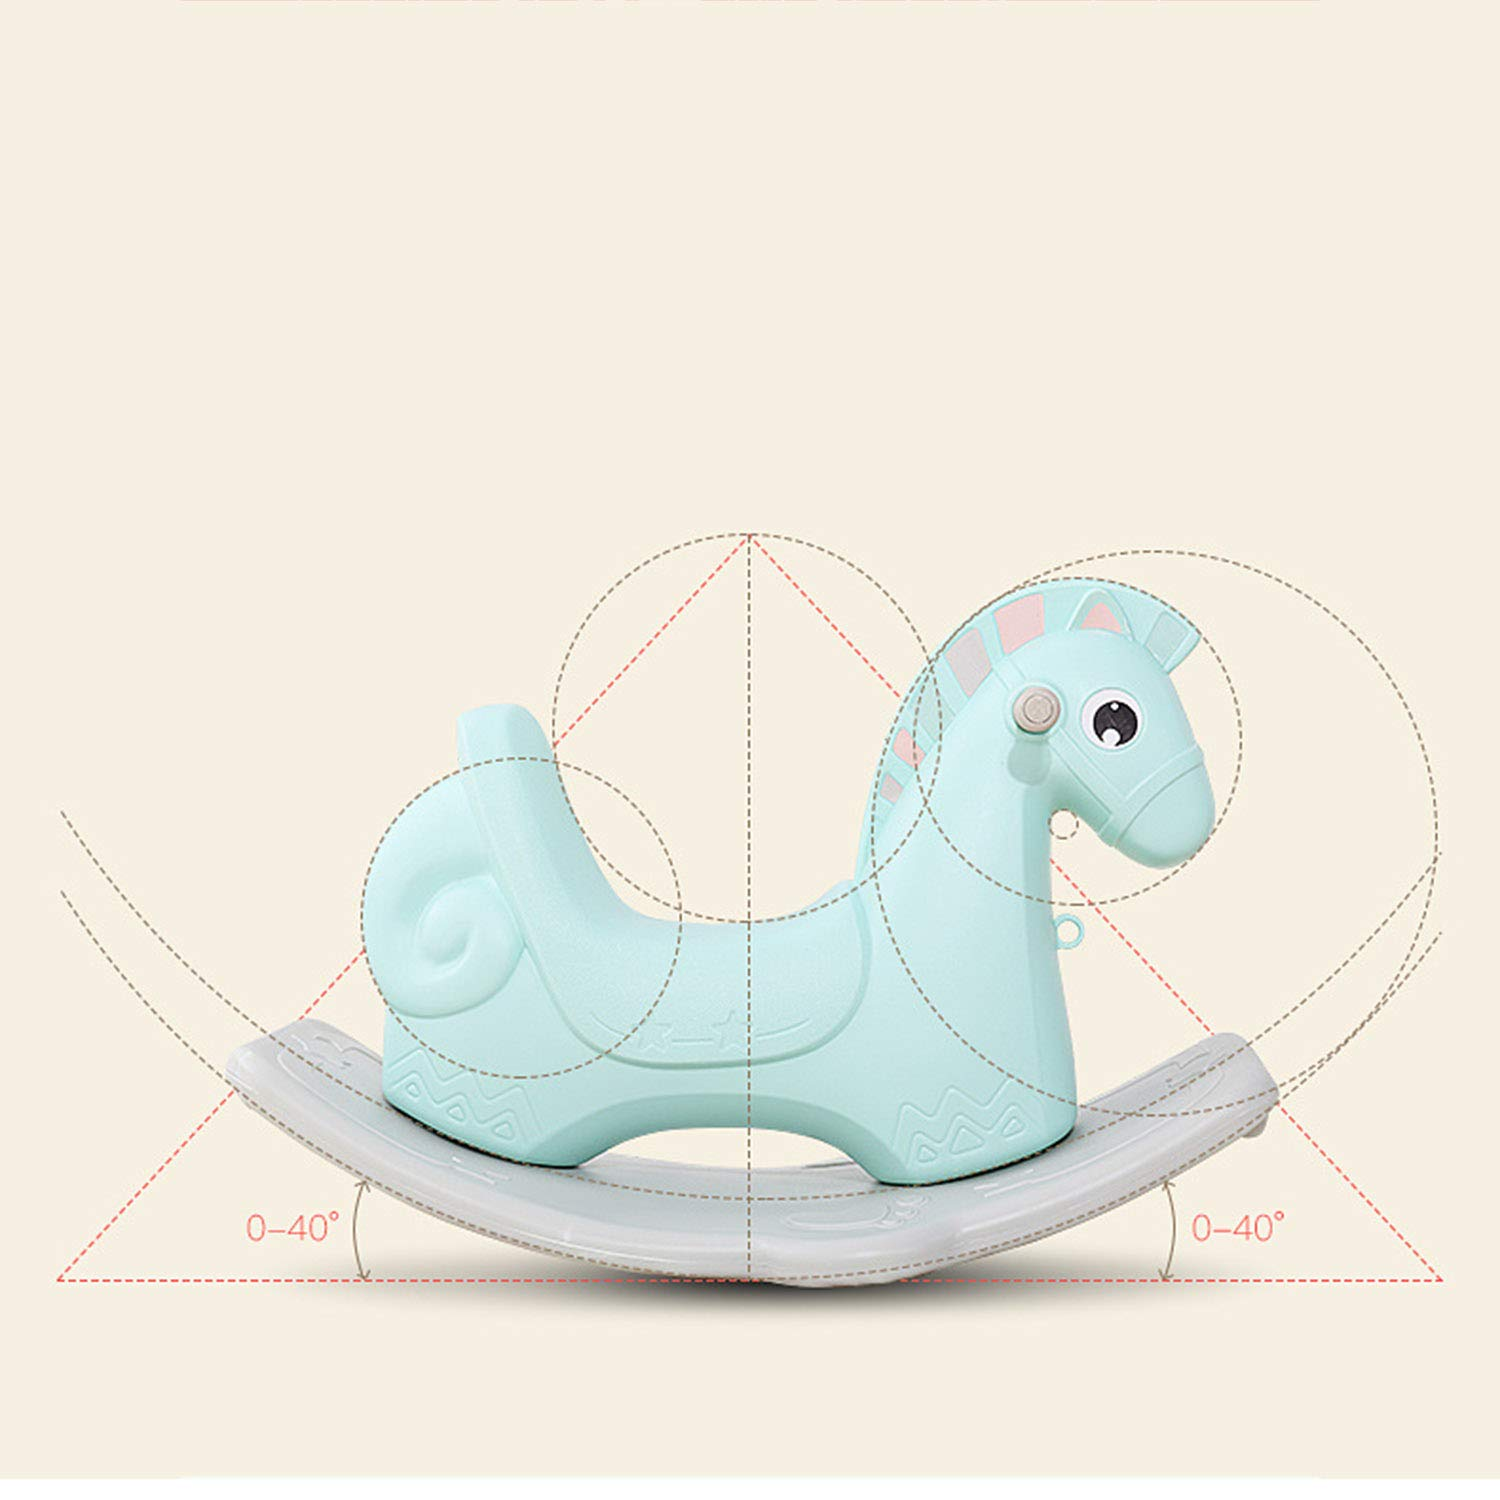 AIBAB Baby Rocking Horse Tumbler Baby Comfort Chair Thick Plastic Multifunction Nursery Boy Girl Toy Gift by AIBAB (Image #5)